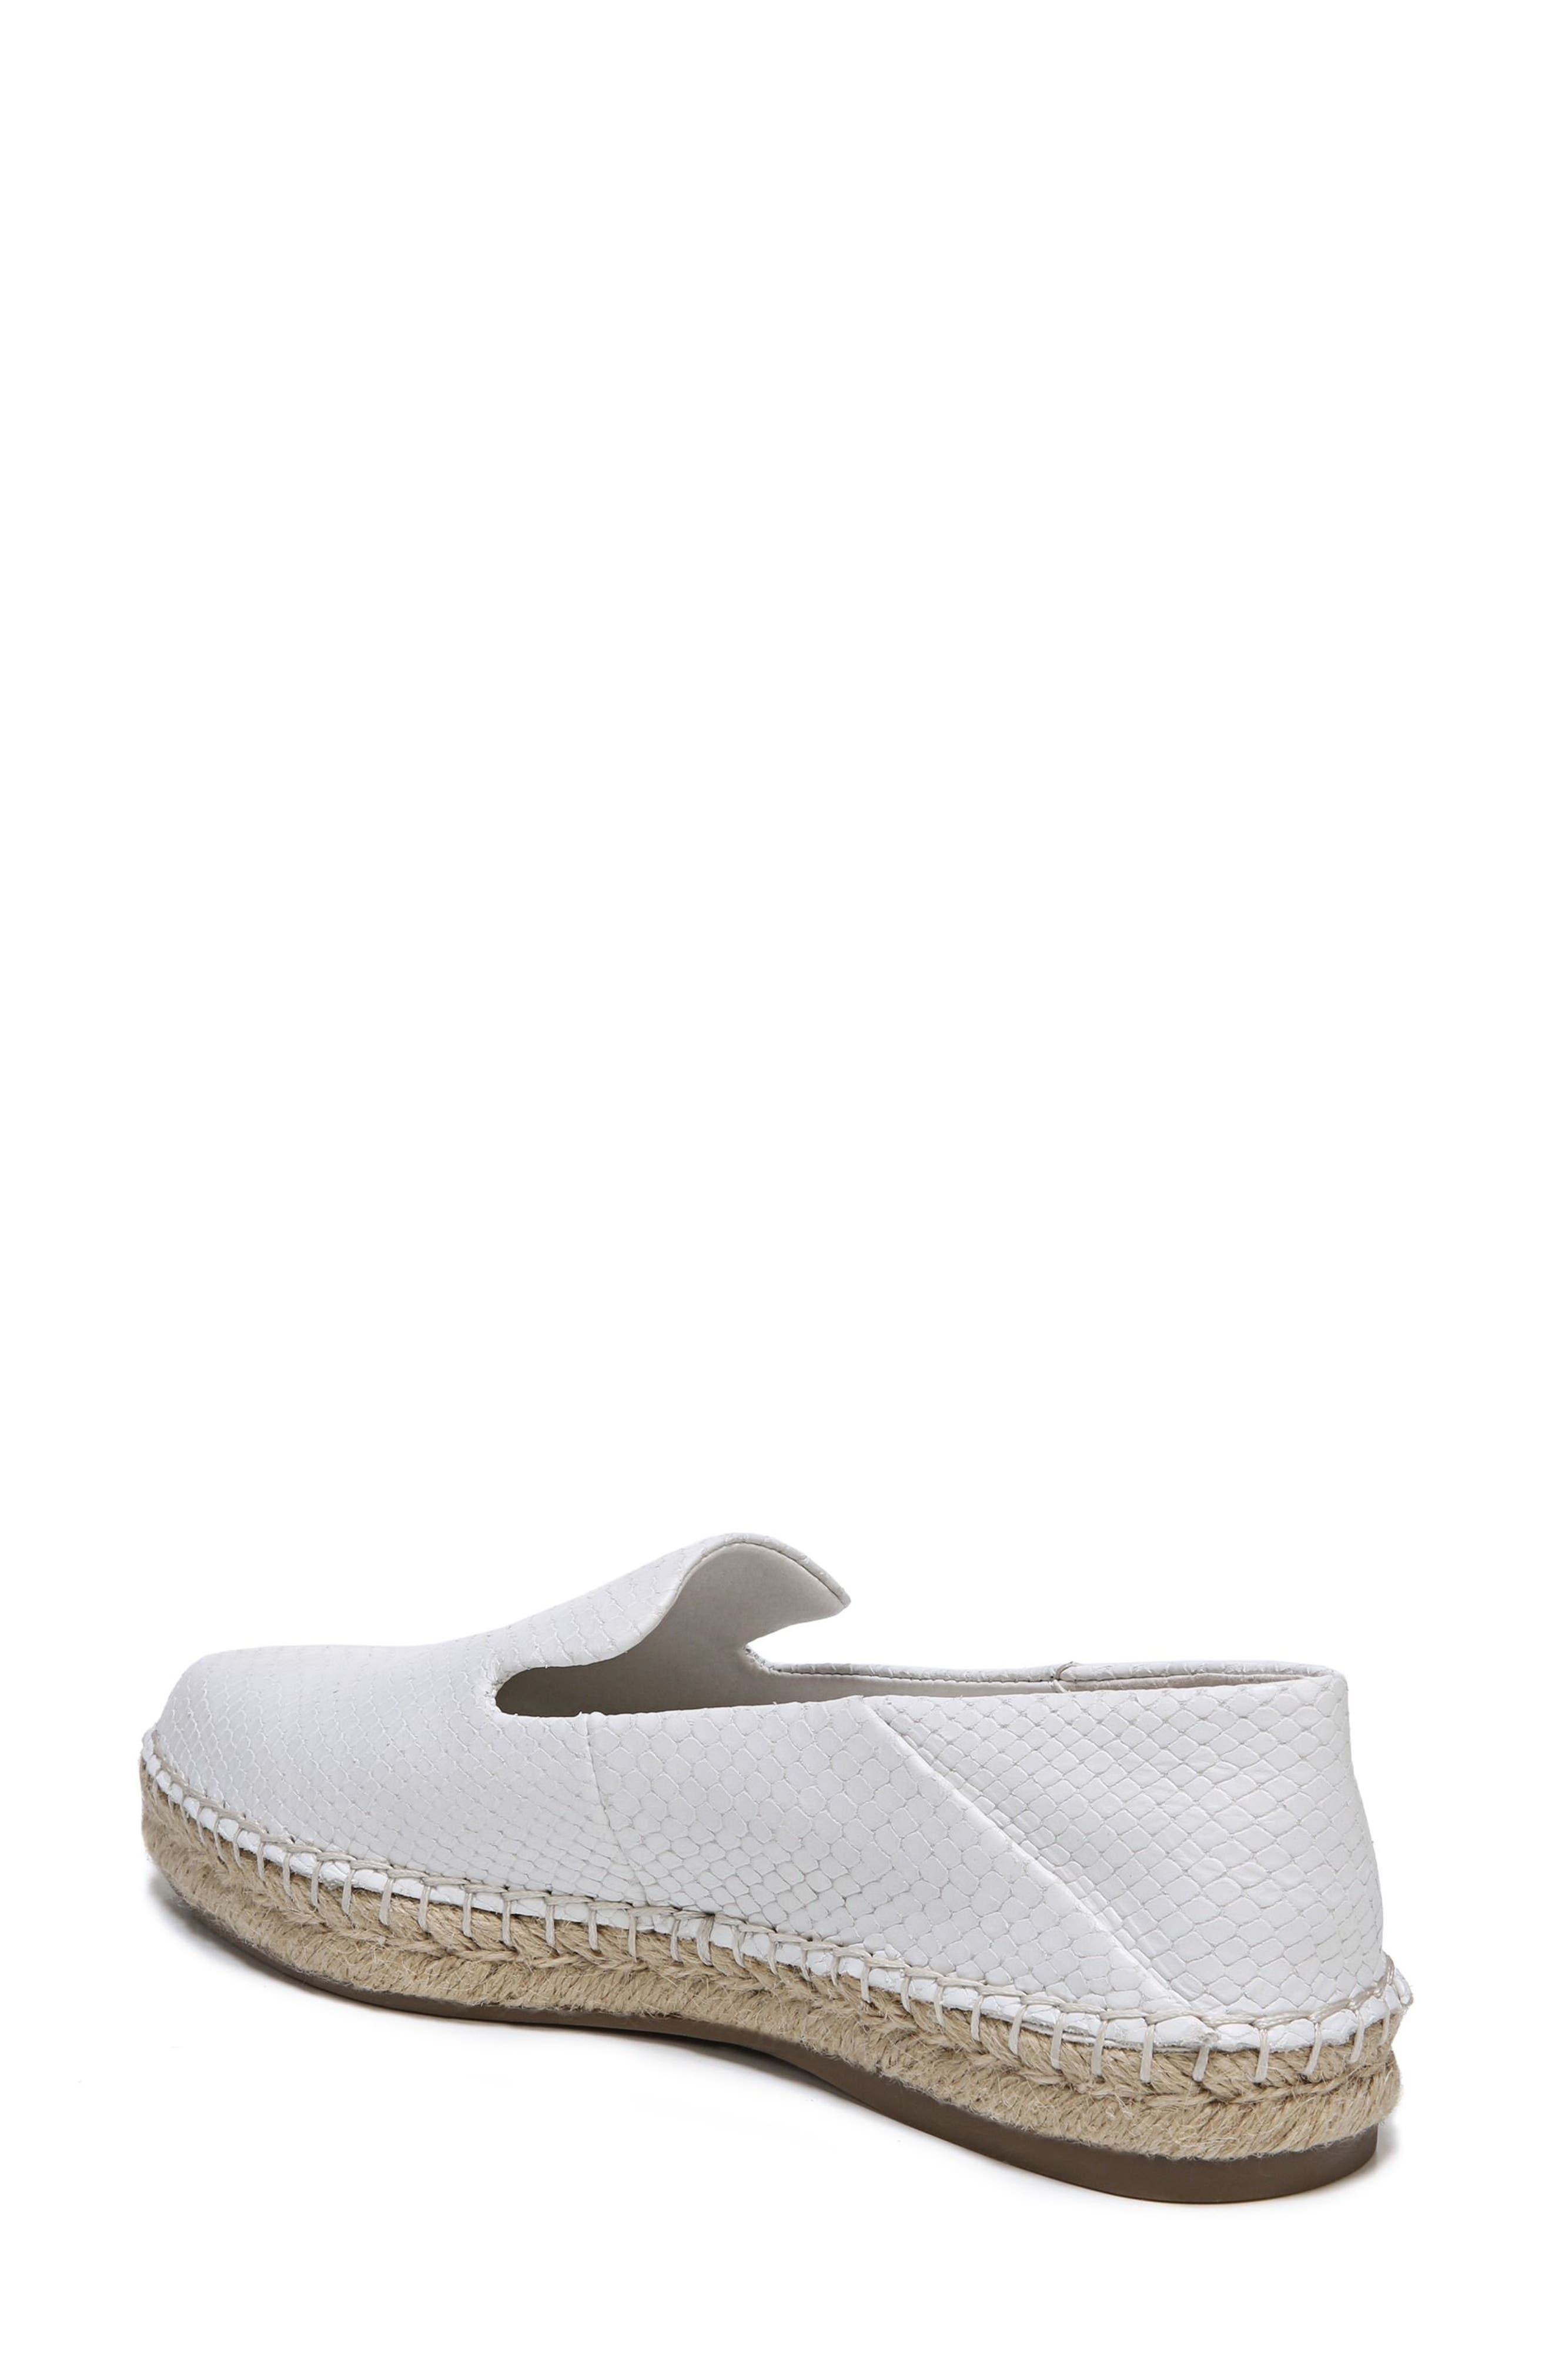 Eviana Espadrille Loafer,                             Alternate thumbnail 2, color,                             Blanca Snake Print Leather